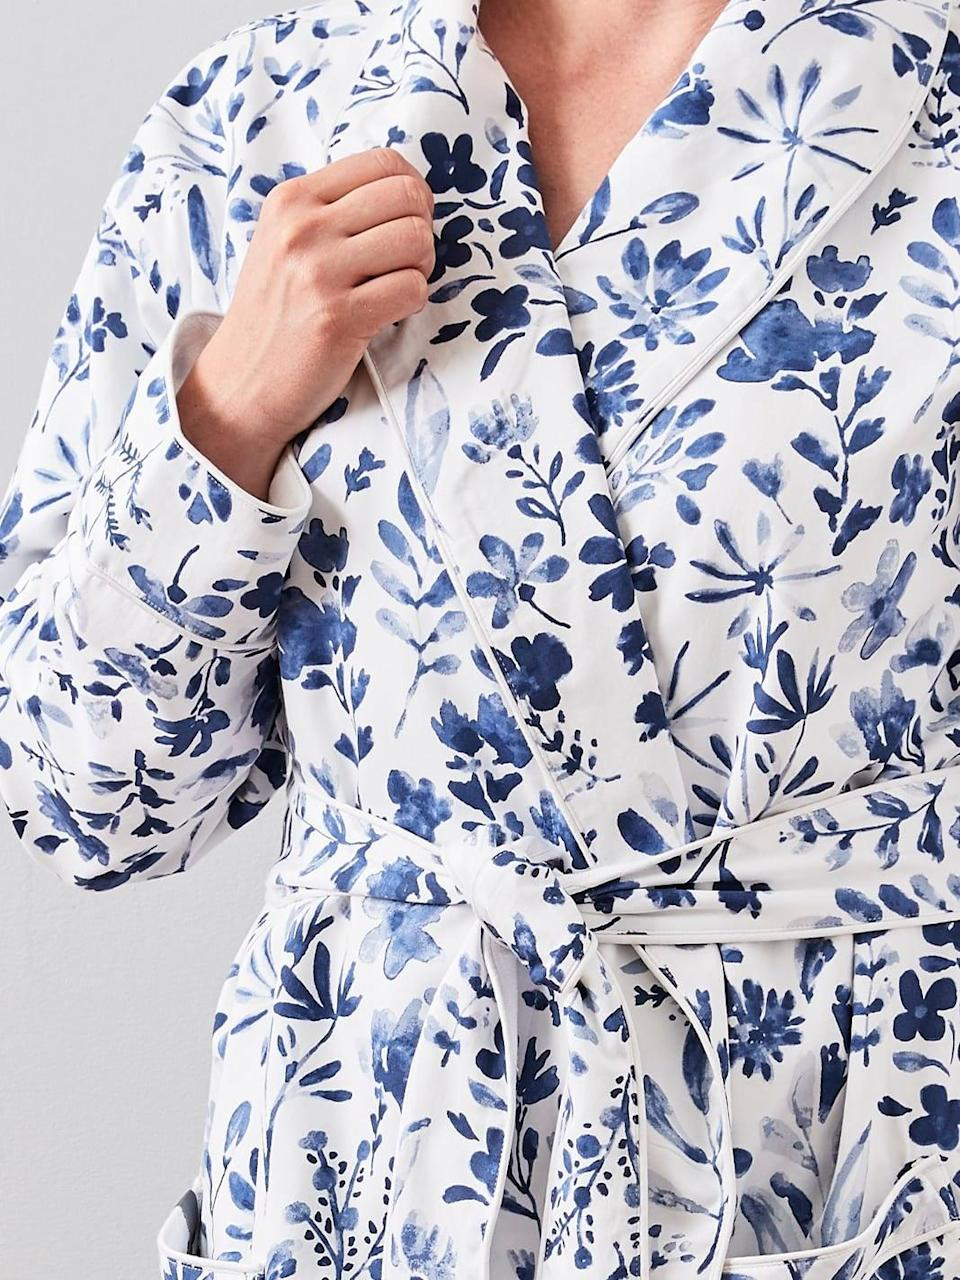 "<h2><a href=""https://www.bollandbranch.com/products/womens-spa-robe"" rel=""nofollow noopener"" target=""_blank"" data-ylk=""slk:Boll & Branch Women's Spa Robe"" class=""link rapid-noclick-resp"">Boll & Branch Women's Spa Robe</a></h2> <br>This limited-edition robe is not only beautiful to look at and super-soft to touch but it's also crafted from 100% organic cotton materials through sustainable and ethical production methods. <br><br><br><br><strong>Boll & Branch</strong> Women's Spa Robe, $, available at <a href=""https://go.skimresources.com/?id=30283X879131&url=https%3A%2F%2Fwww.bollandbranch.com%2Fproducts%2Fwomens-spa-robe"" rel=""nofollow noopener"" target=""_blank"" data-ylk=""slk:Boll & Branch"" class=""link rapid-noclick-resp"">Boll & Branch</a><br><br><br>"